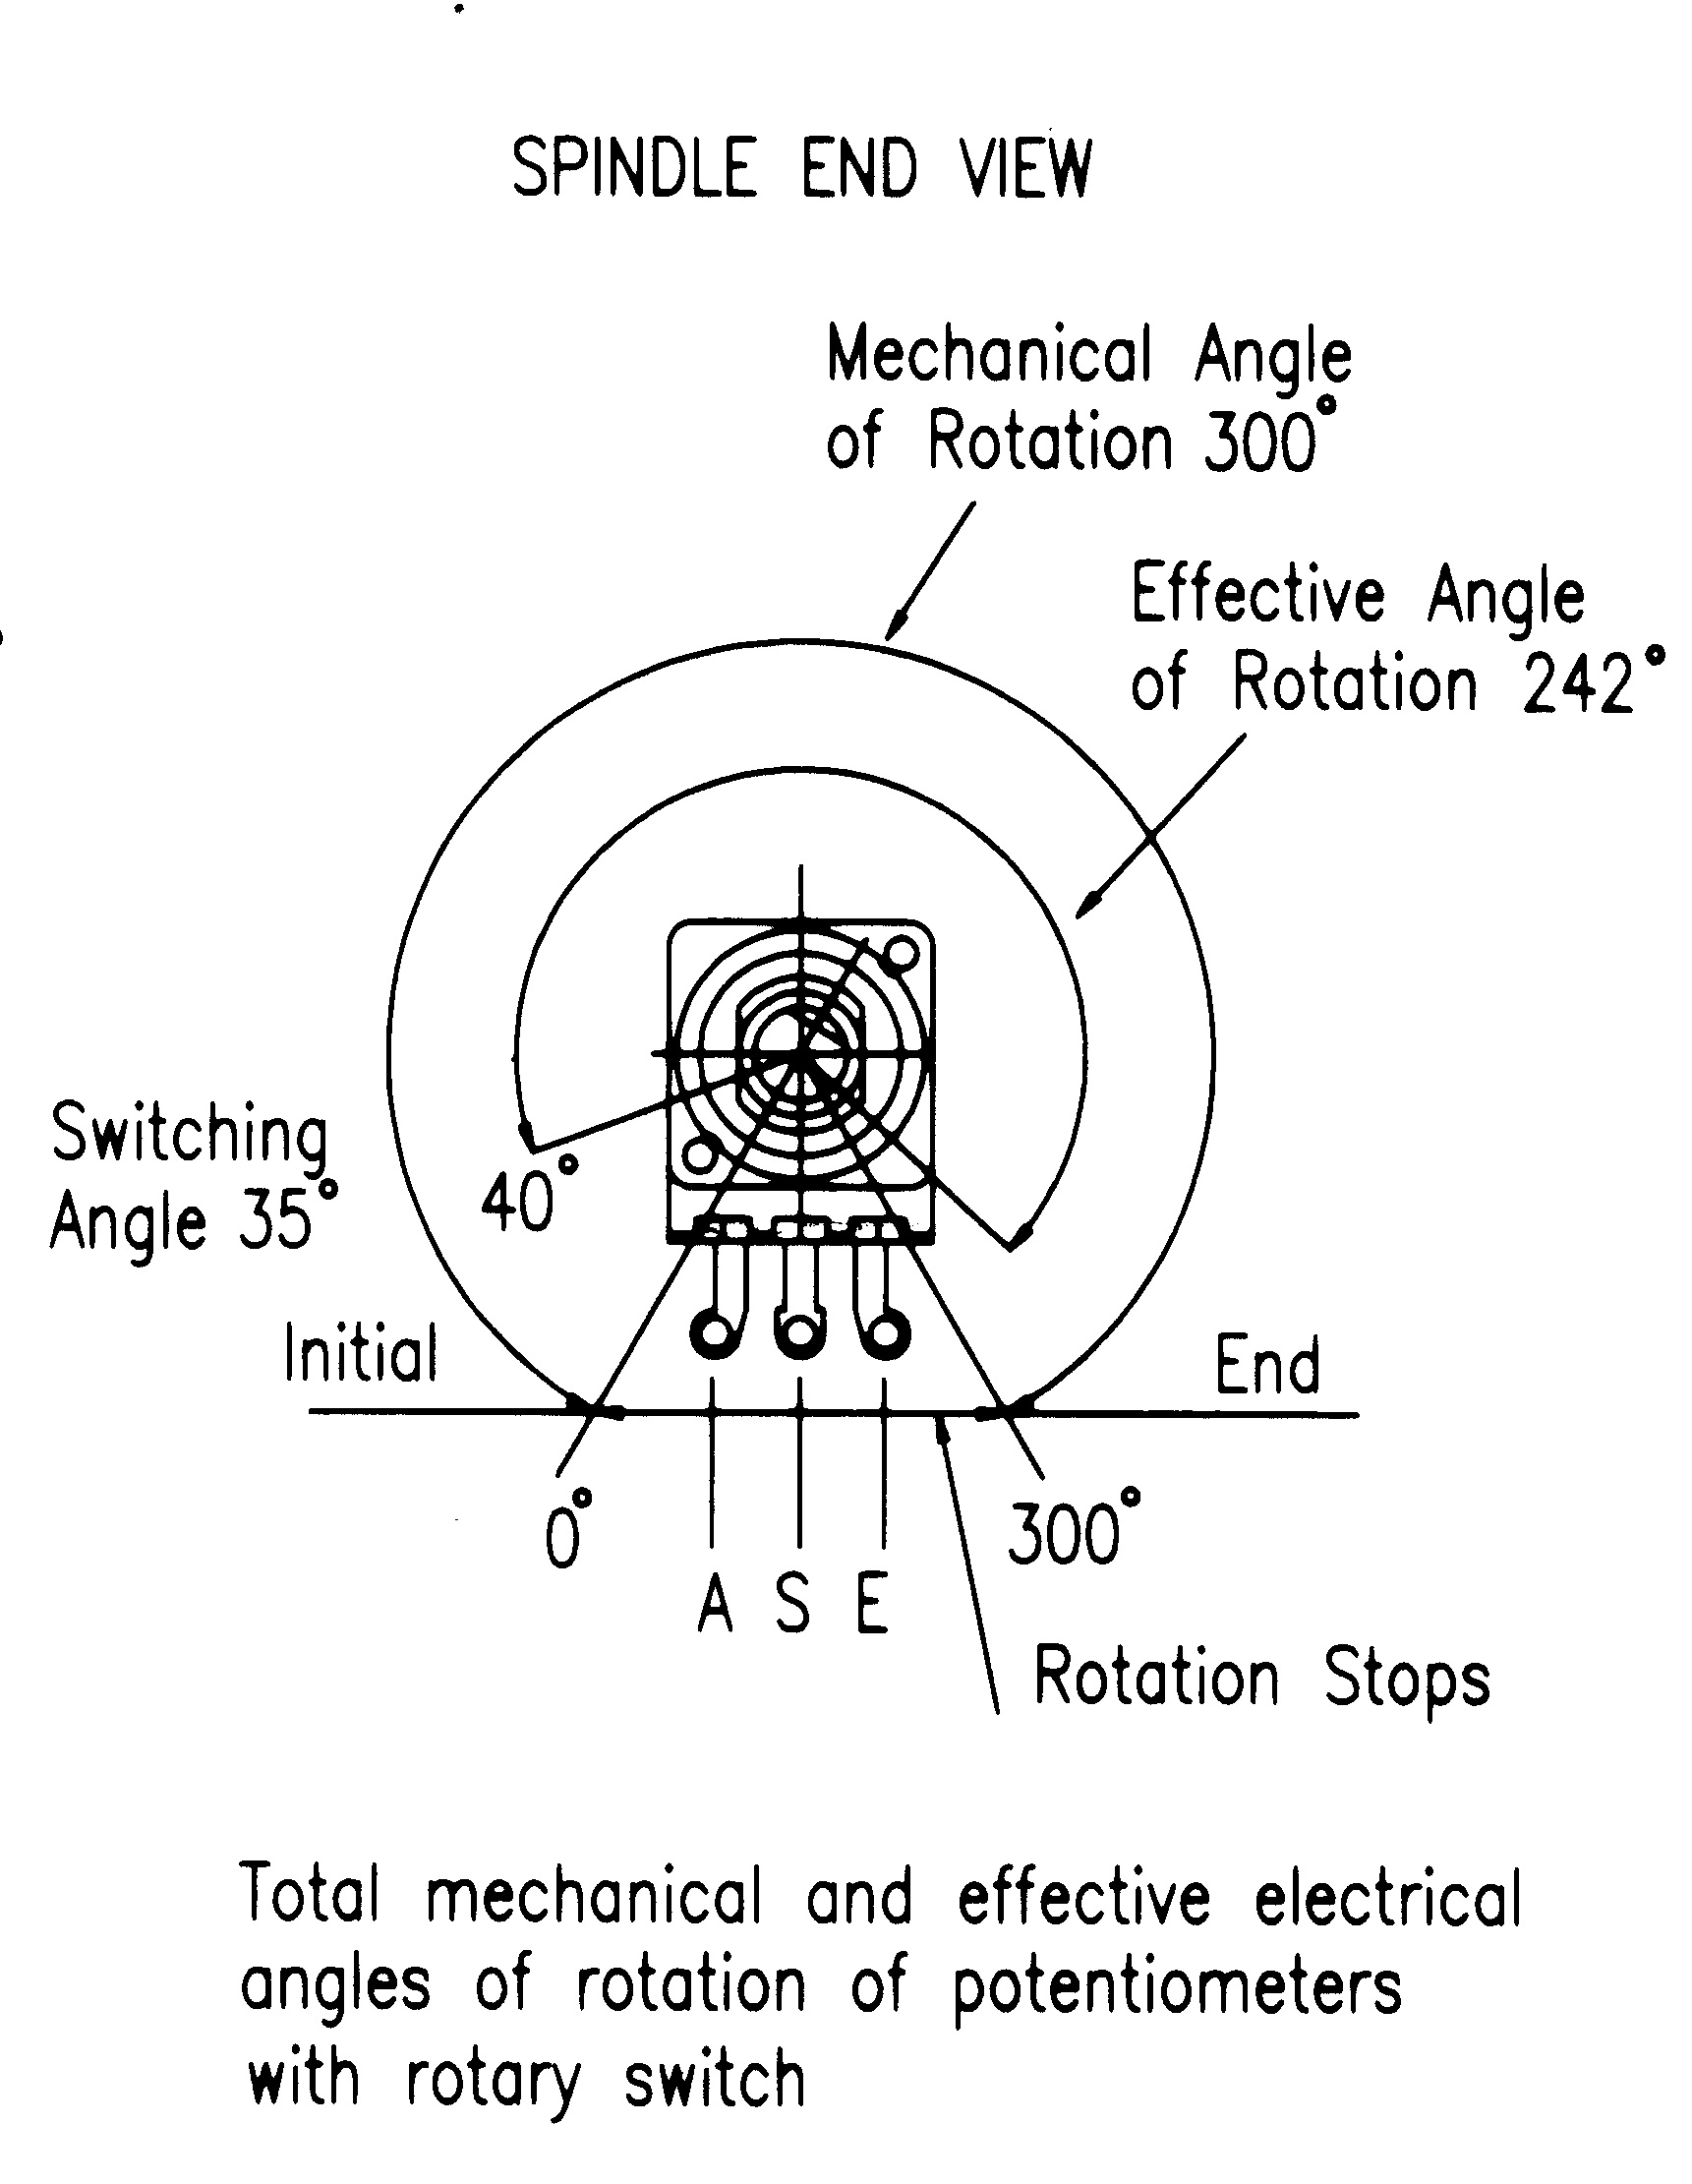 hight resolution of eco rotary switch potentiometer angles of rotation